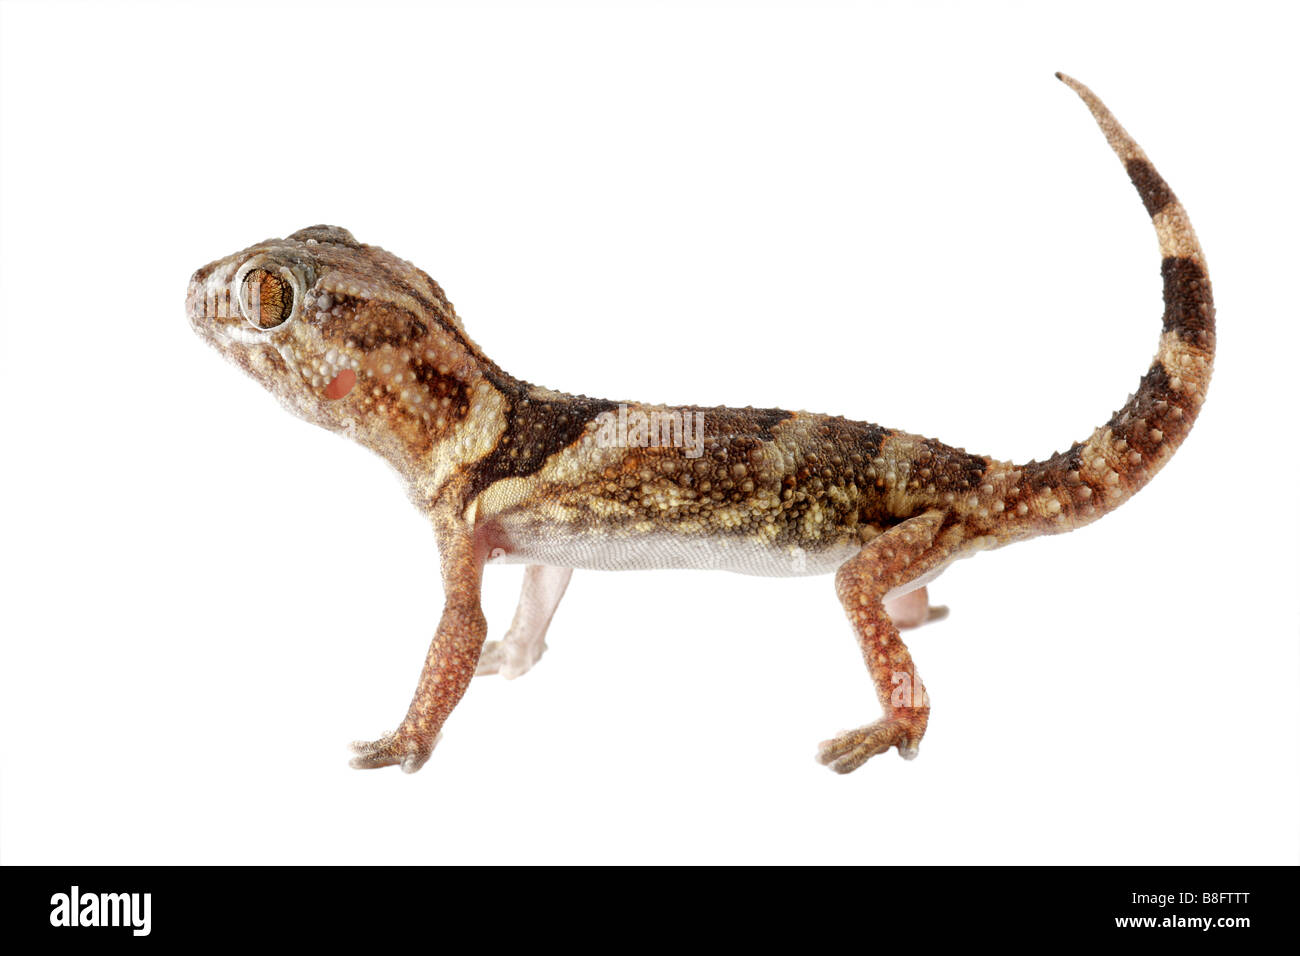 An African giant ground gecko (Chondrodactylus angulifer) on white - Stock Image